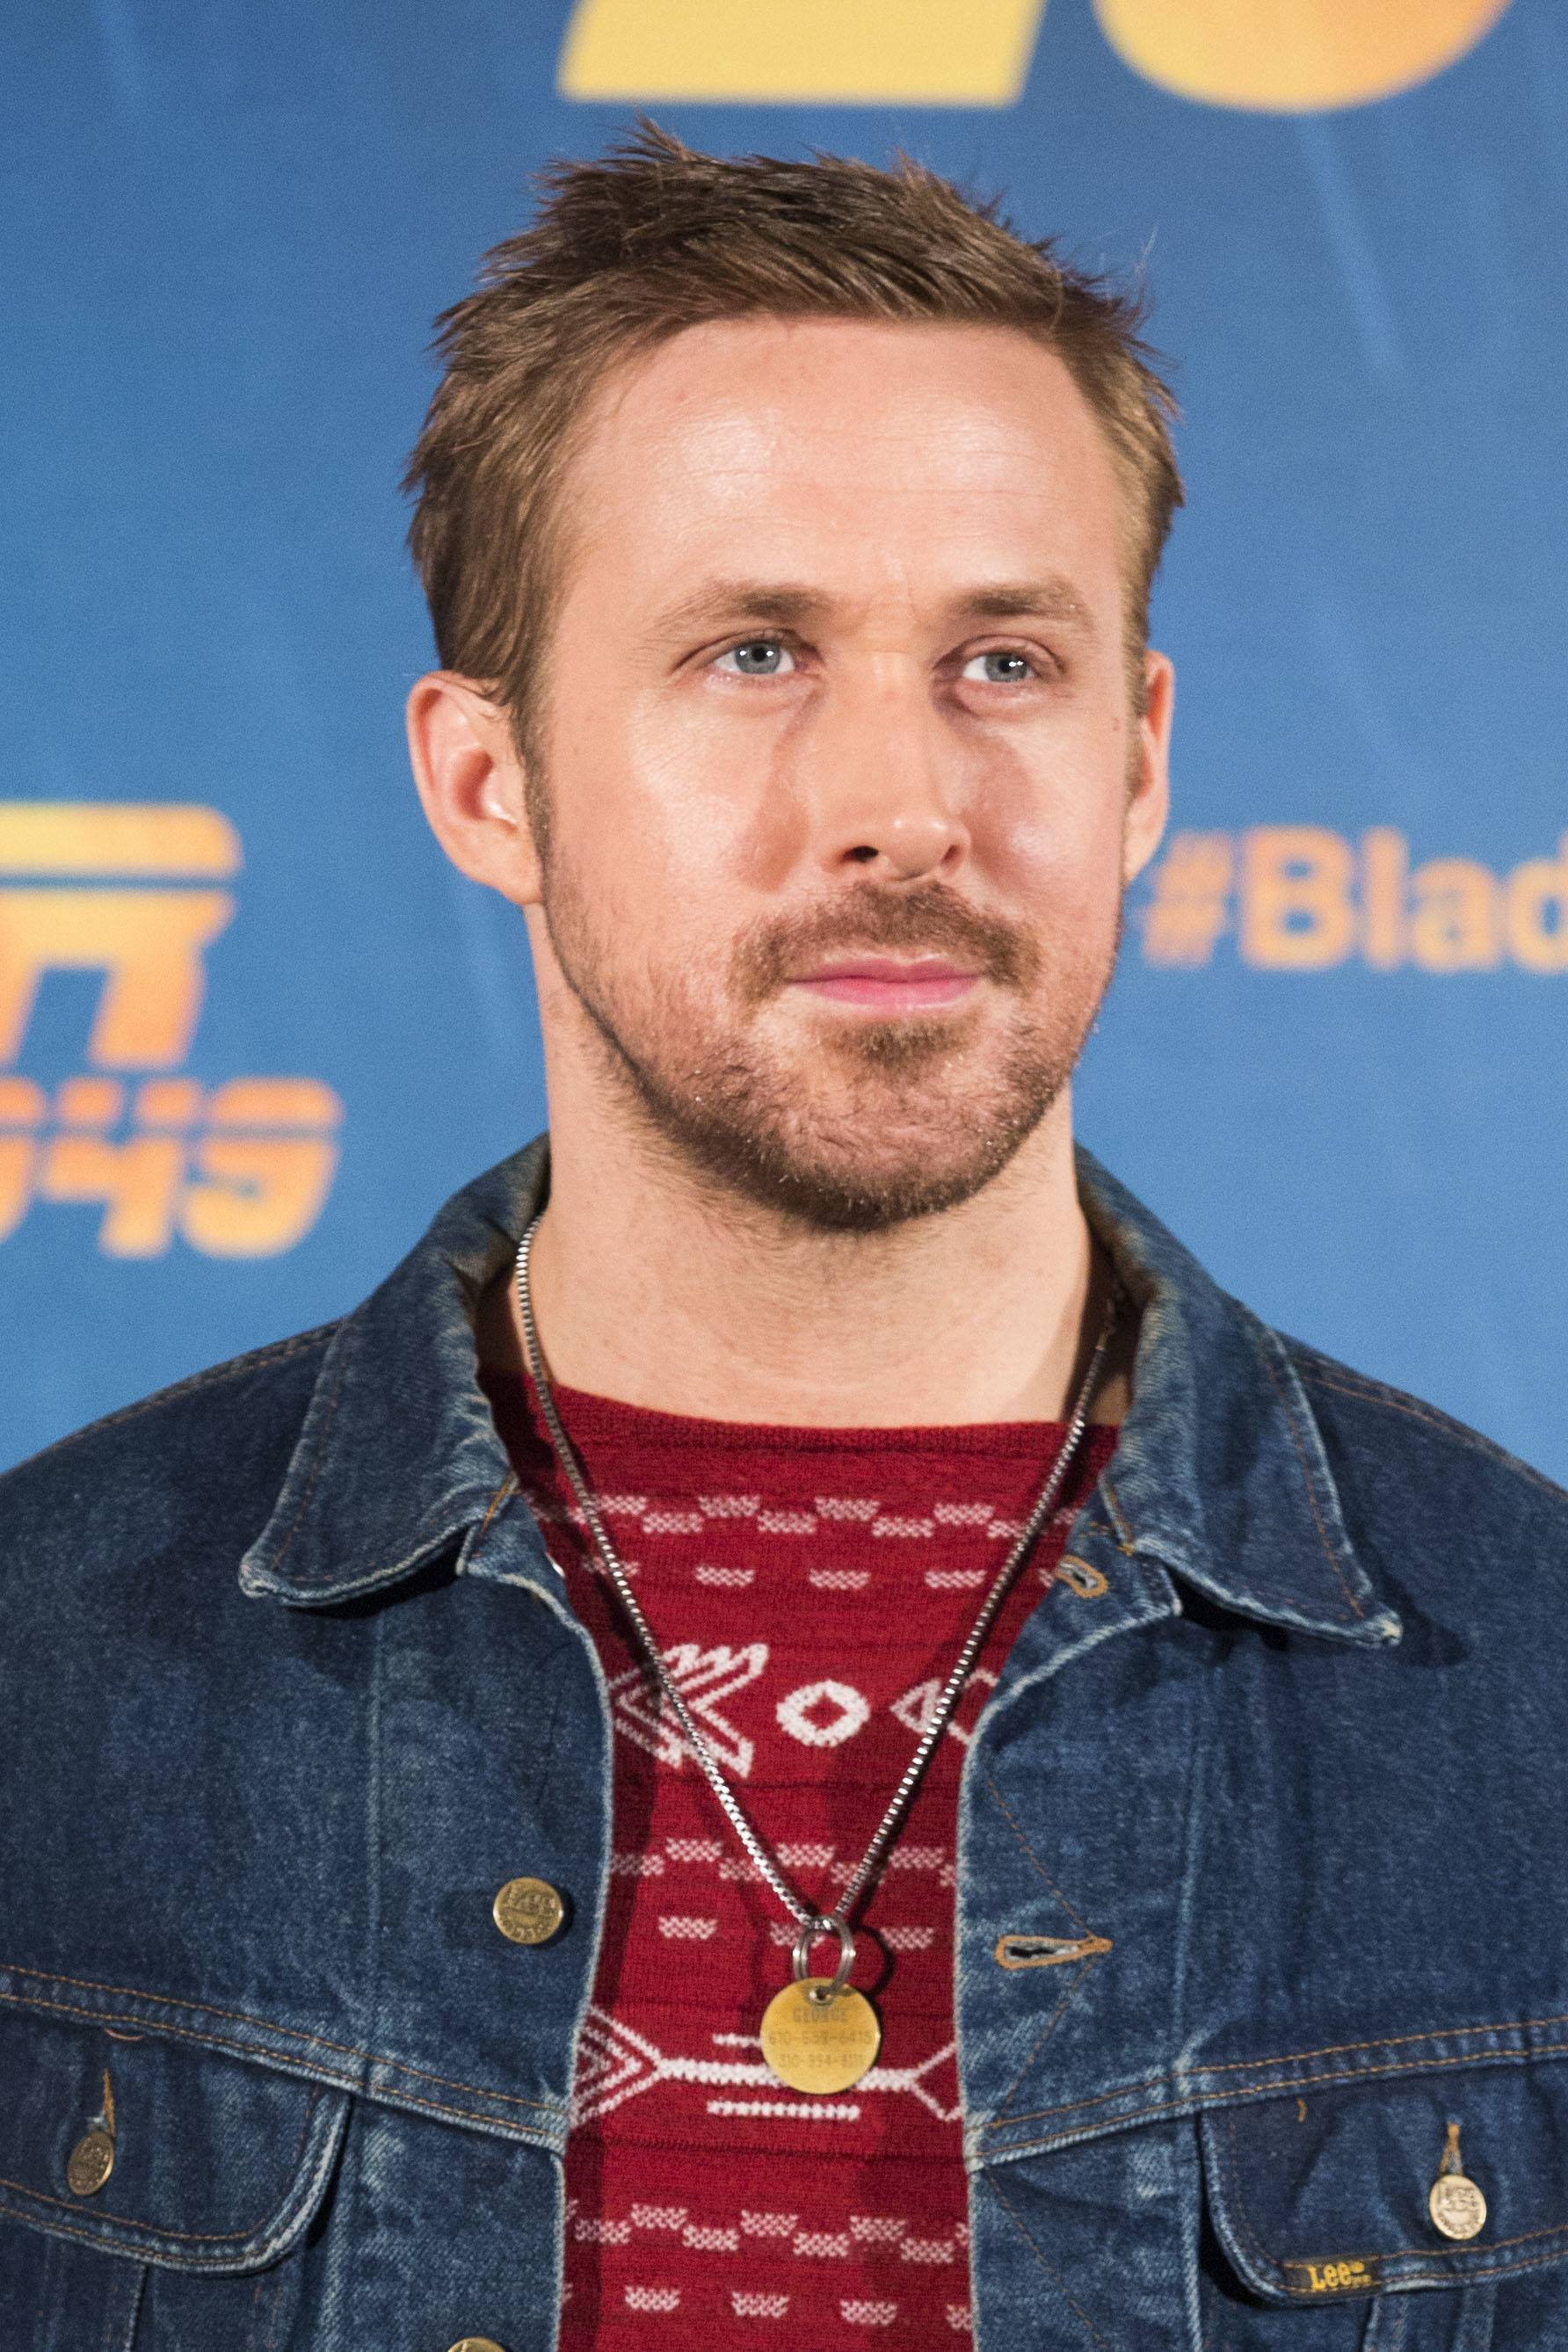 Ryan Gosling haircut: Ryan Gosling with a spiked-up crew cut haircut, wearing a red patterned top and a denim jacket